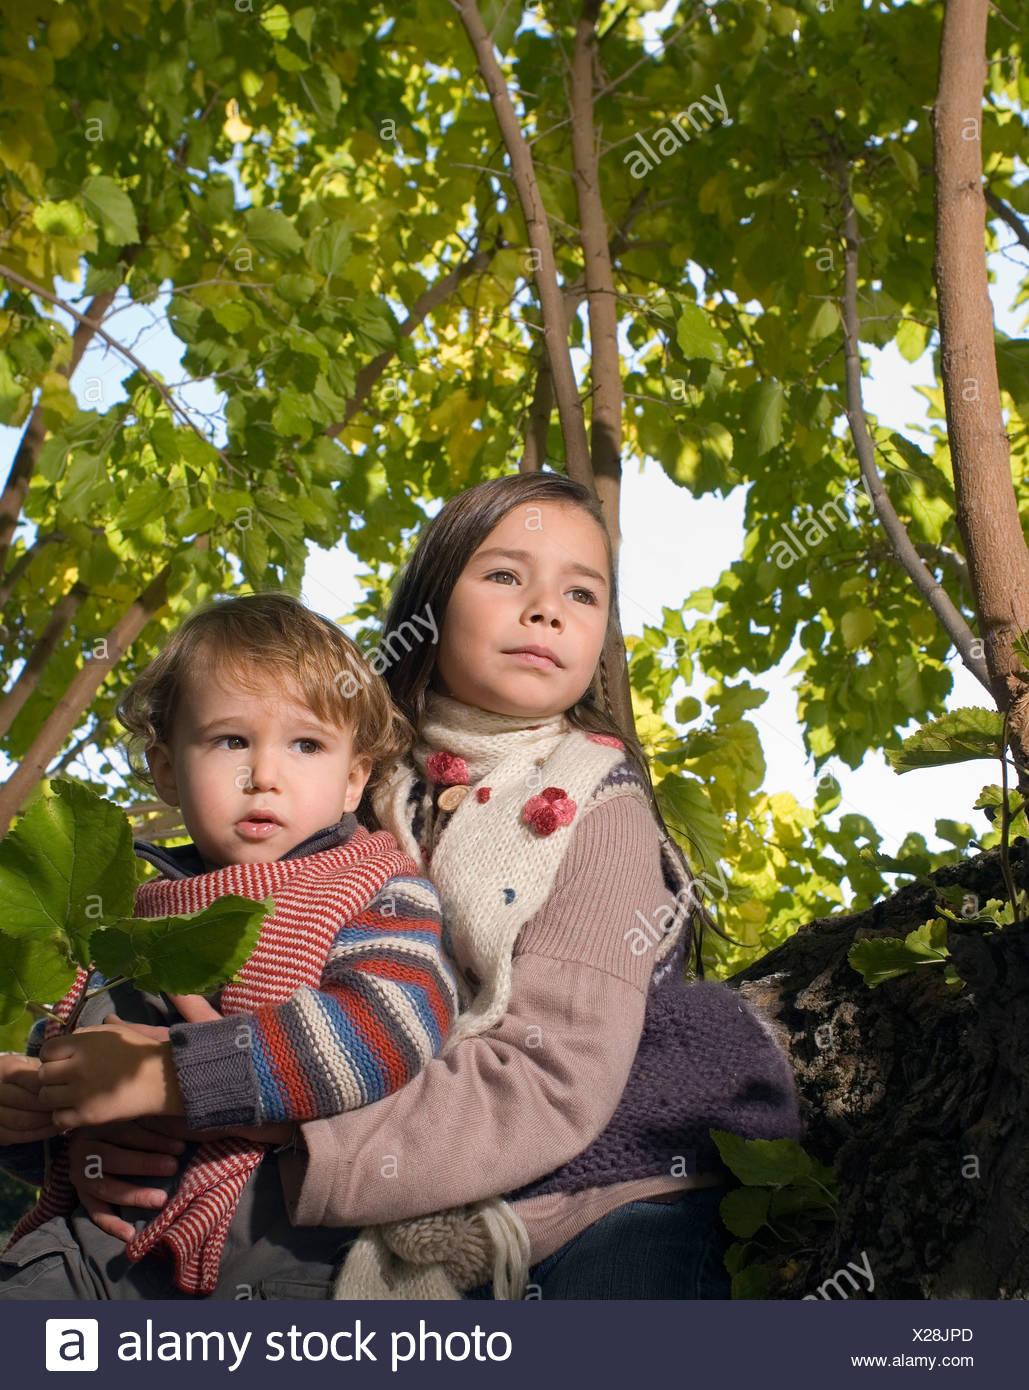 Girl holding boy in a tree Stock Photo